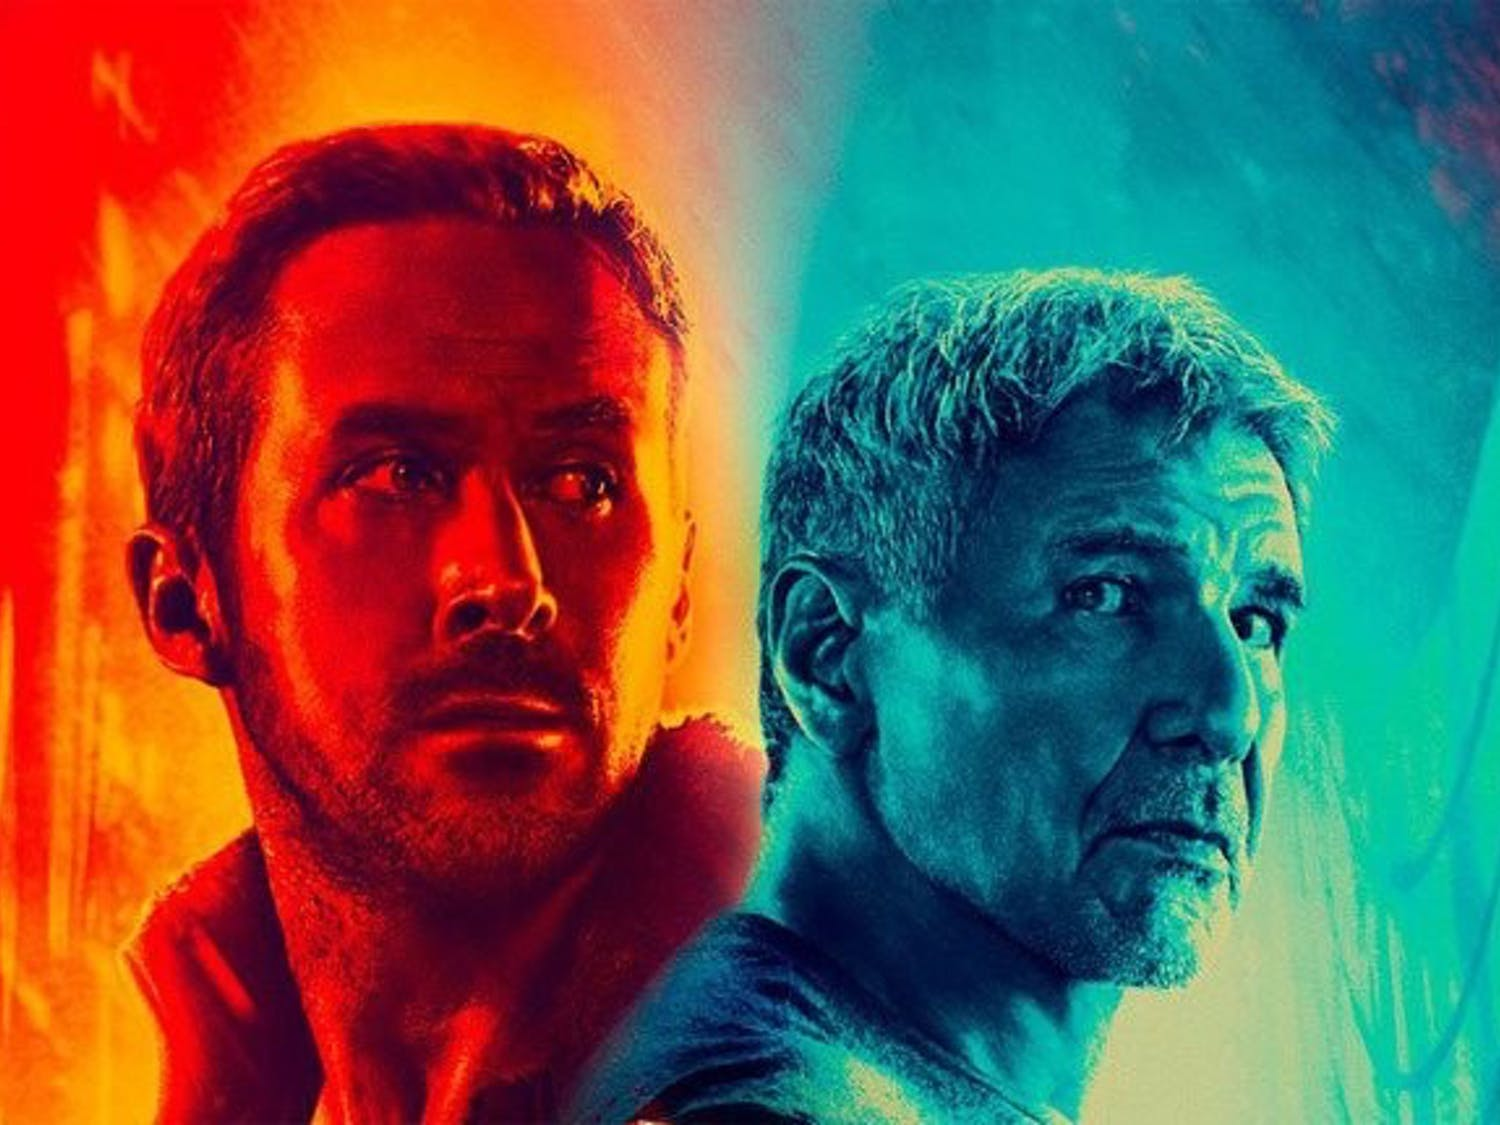 """Ryan Gosling and Harrison Ford star in """"Blade Runner 2049,"""" a follow-up to the 1982 original film."""